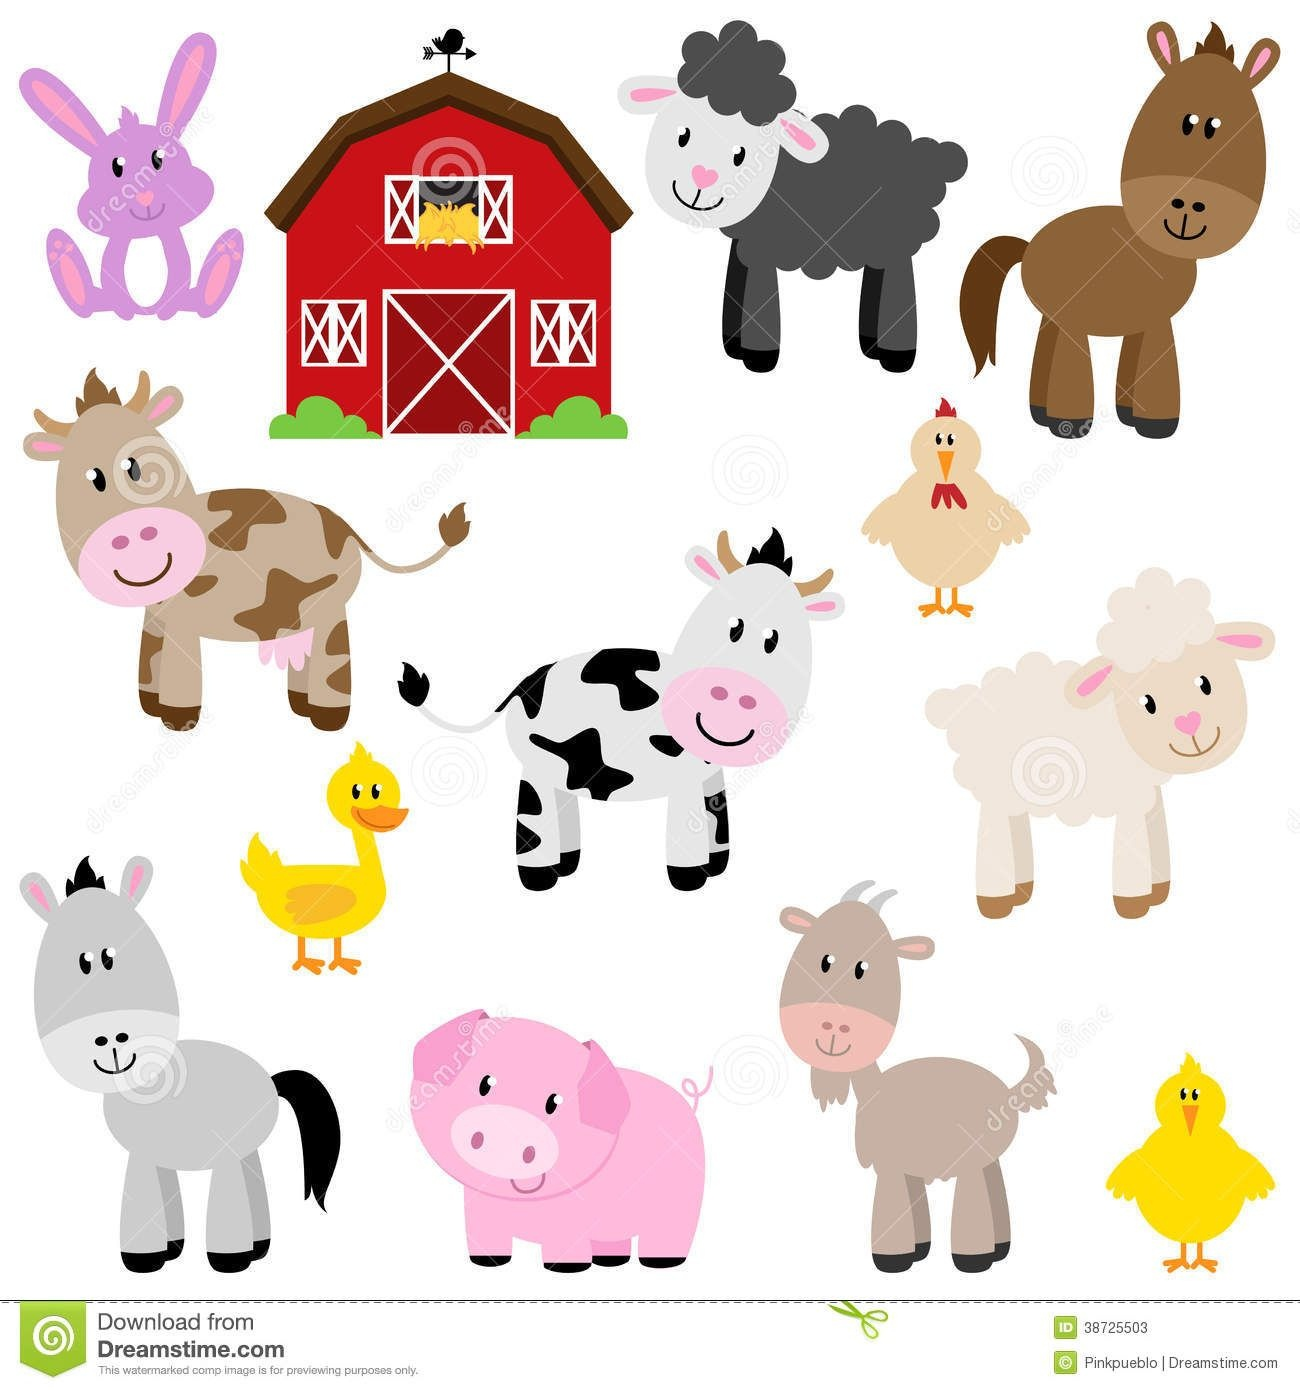 Vector Collection Of Cute Cartoon Farm Animals - Download From Over - Free Printable Farm Animal Clipart